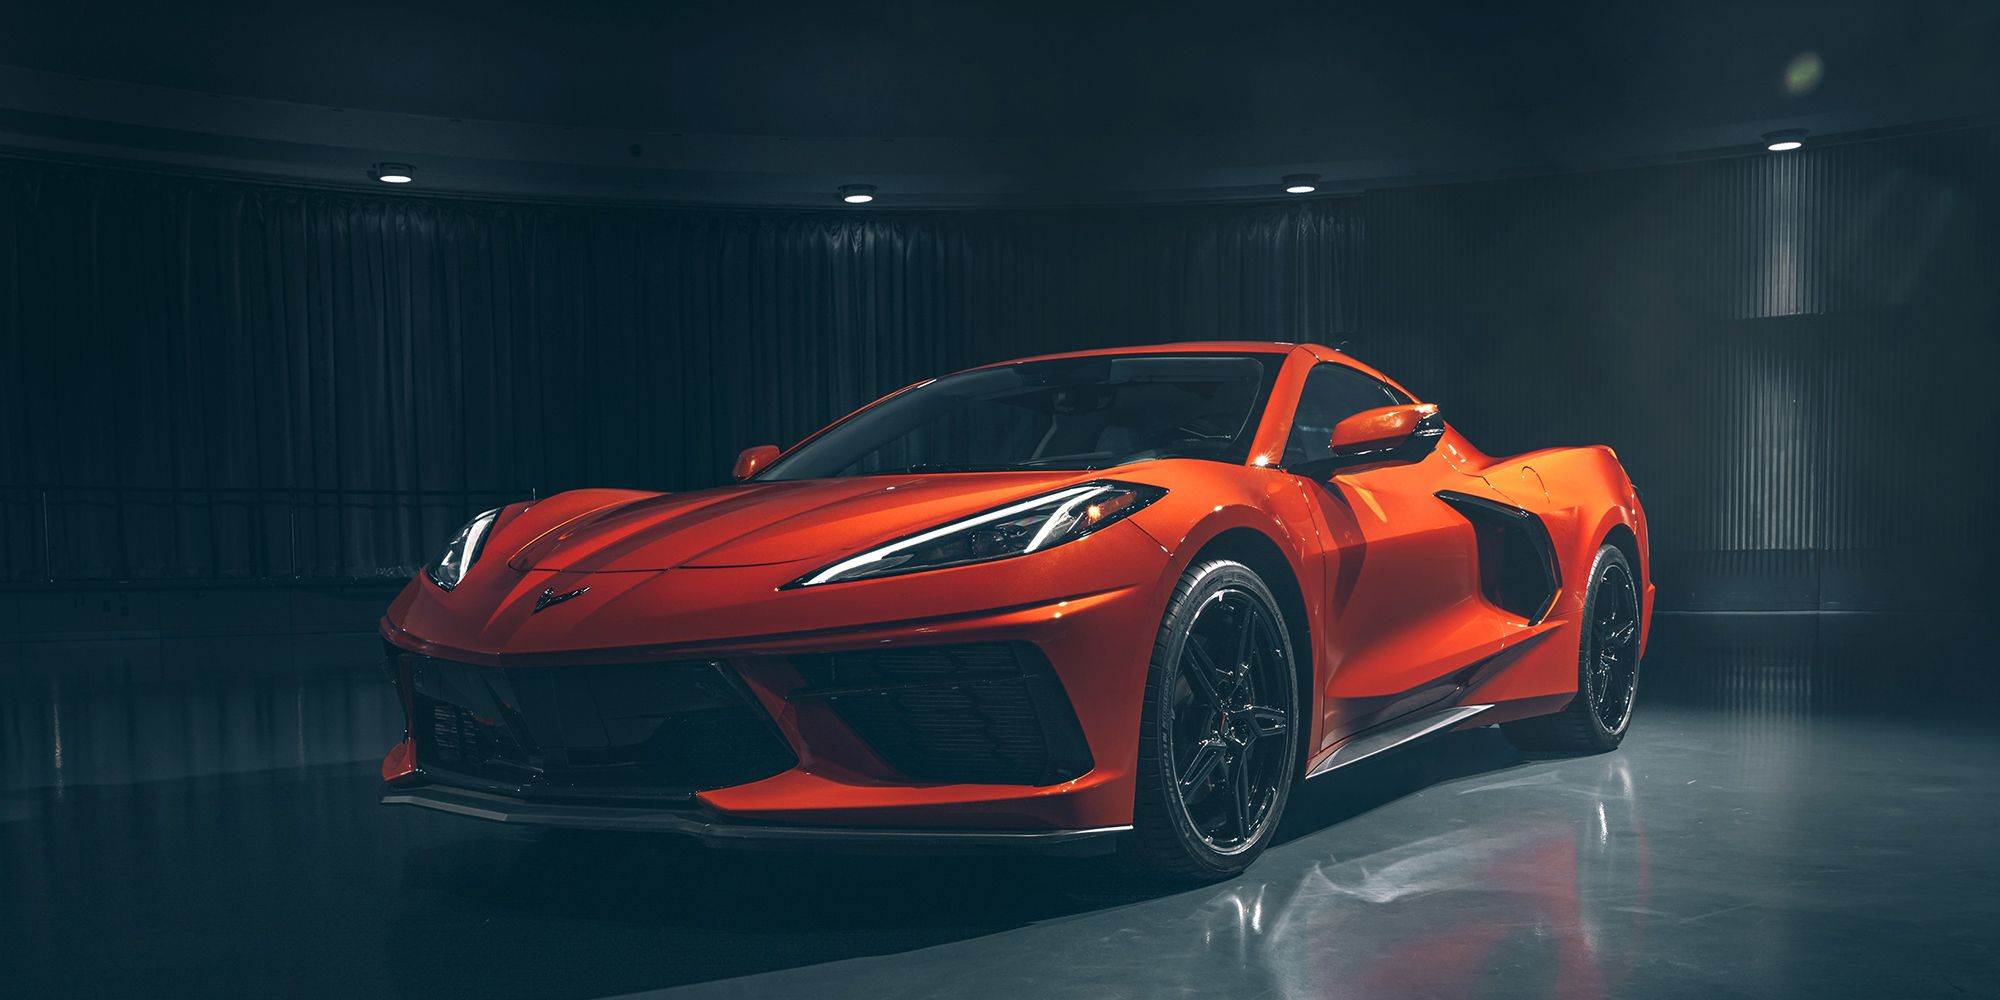 Mid-Engine C8 Corvette Production Postponed Until February 2020